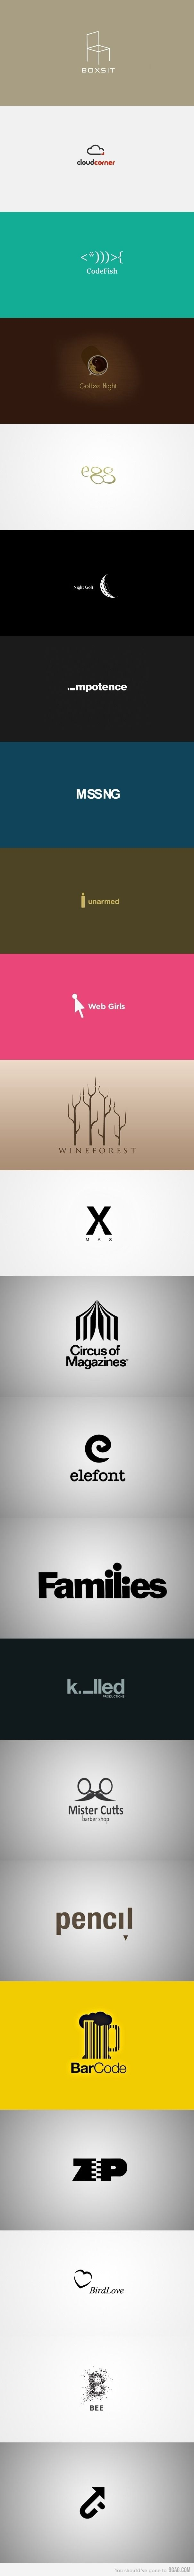 Logo inspiration, these logos are amazing!!